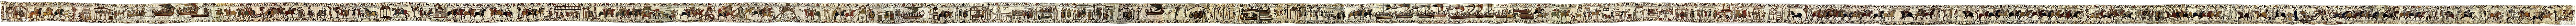 An extremely long embroidered cloth depicting events leading to the Norman conquest of England.